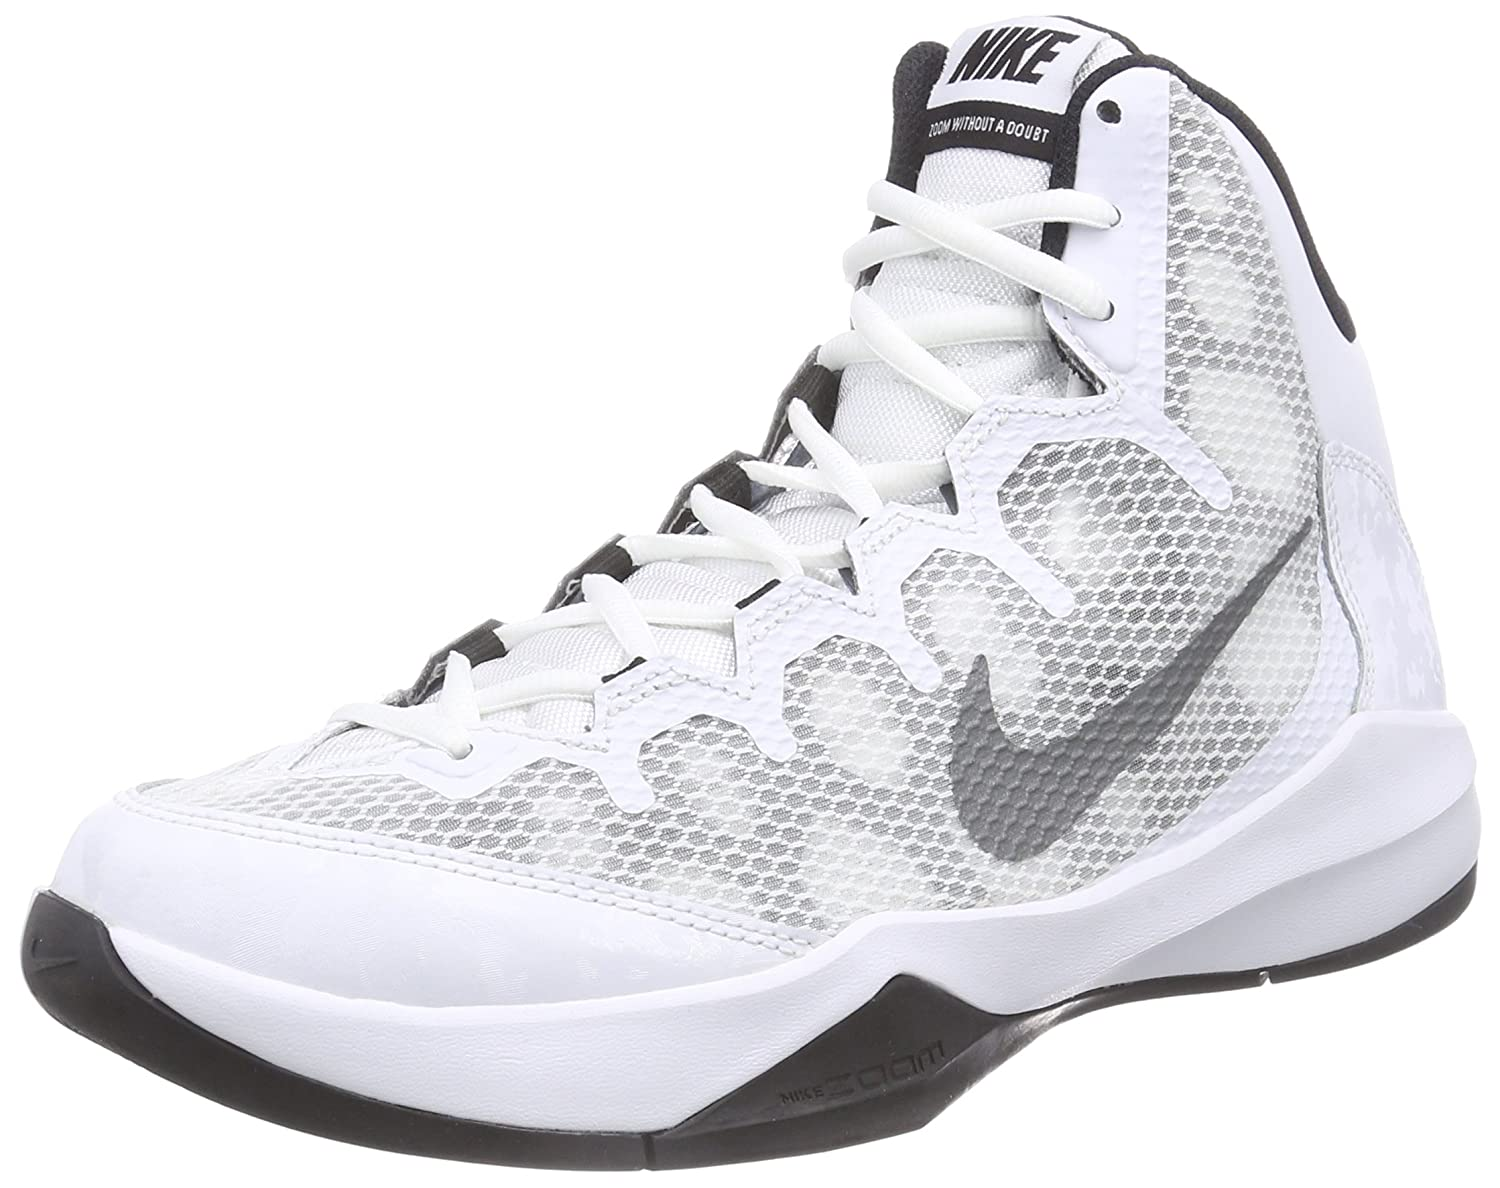 NIKE Men's Zoom Without A Doubt Basketball Shoe B00Q6YKCXY 8 D(M) US|White / Reflective Silver-black-cool Grey